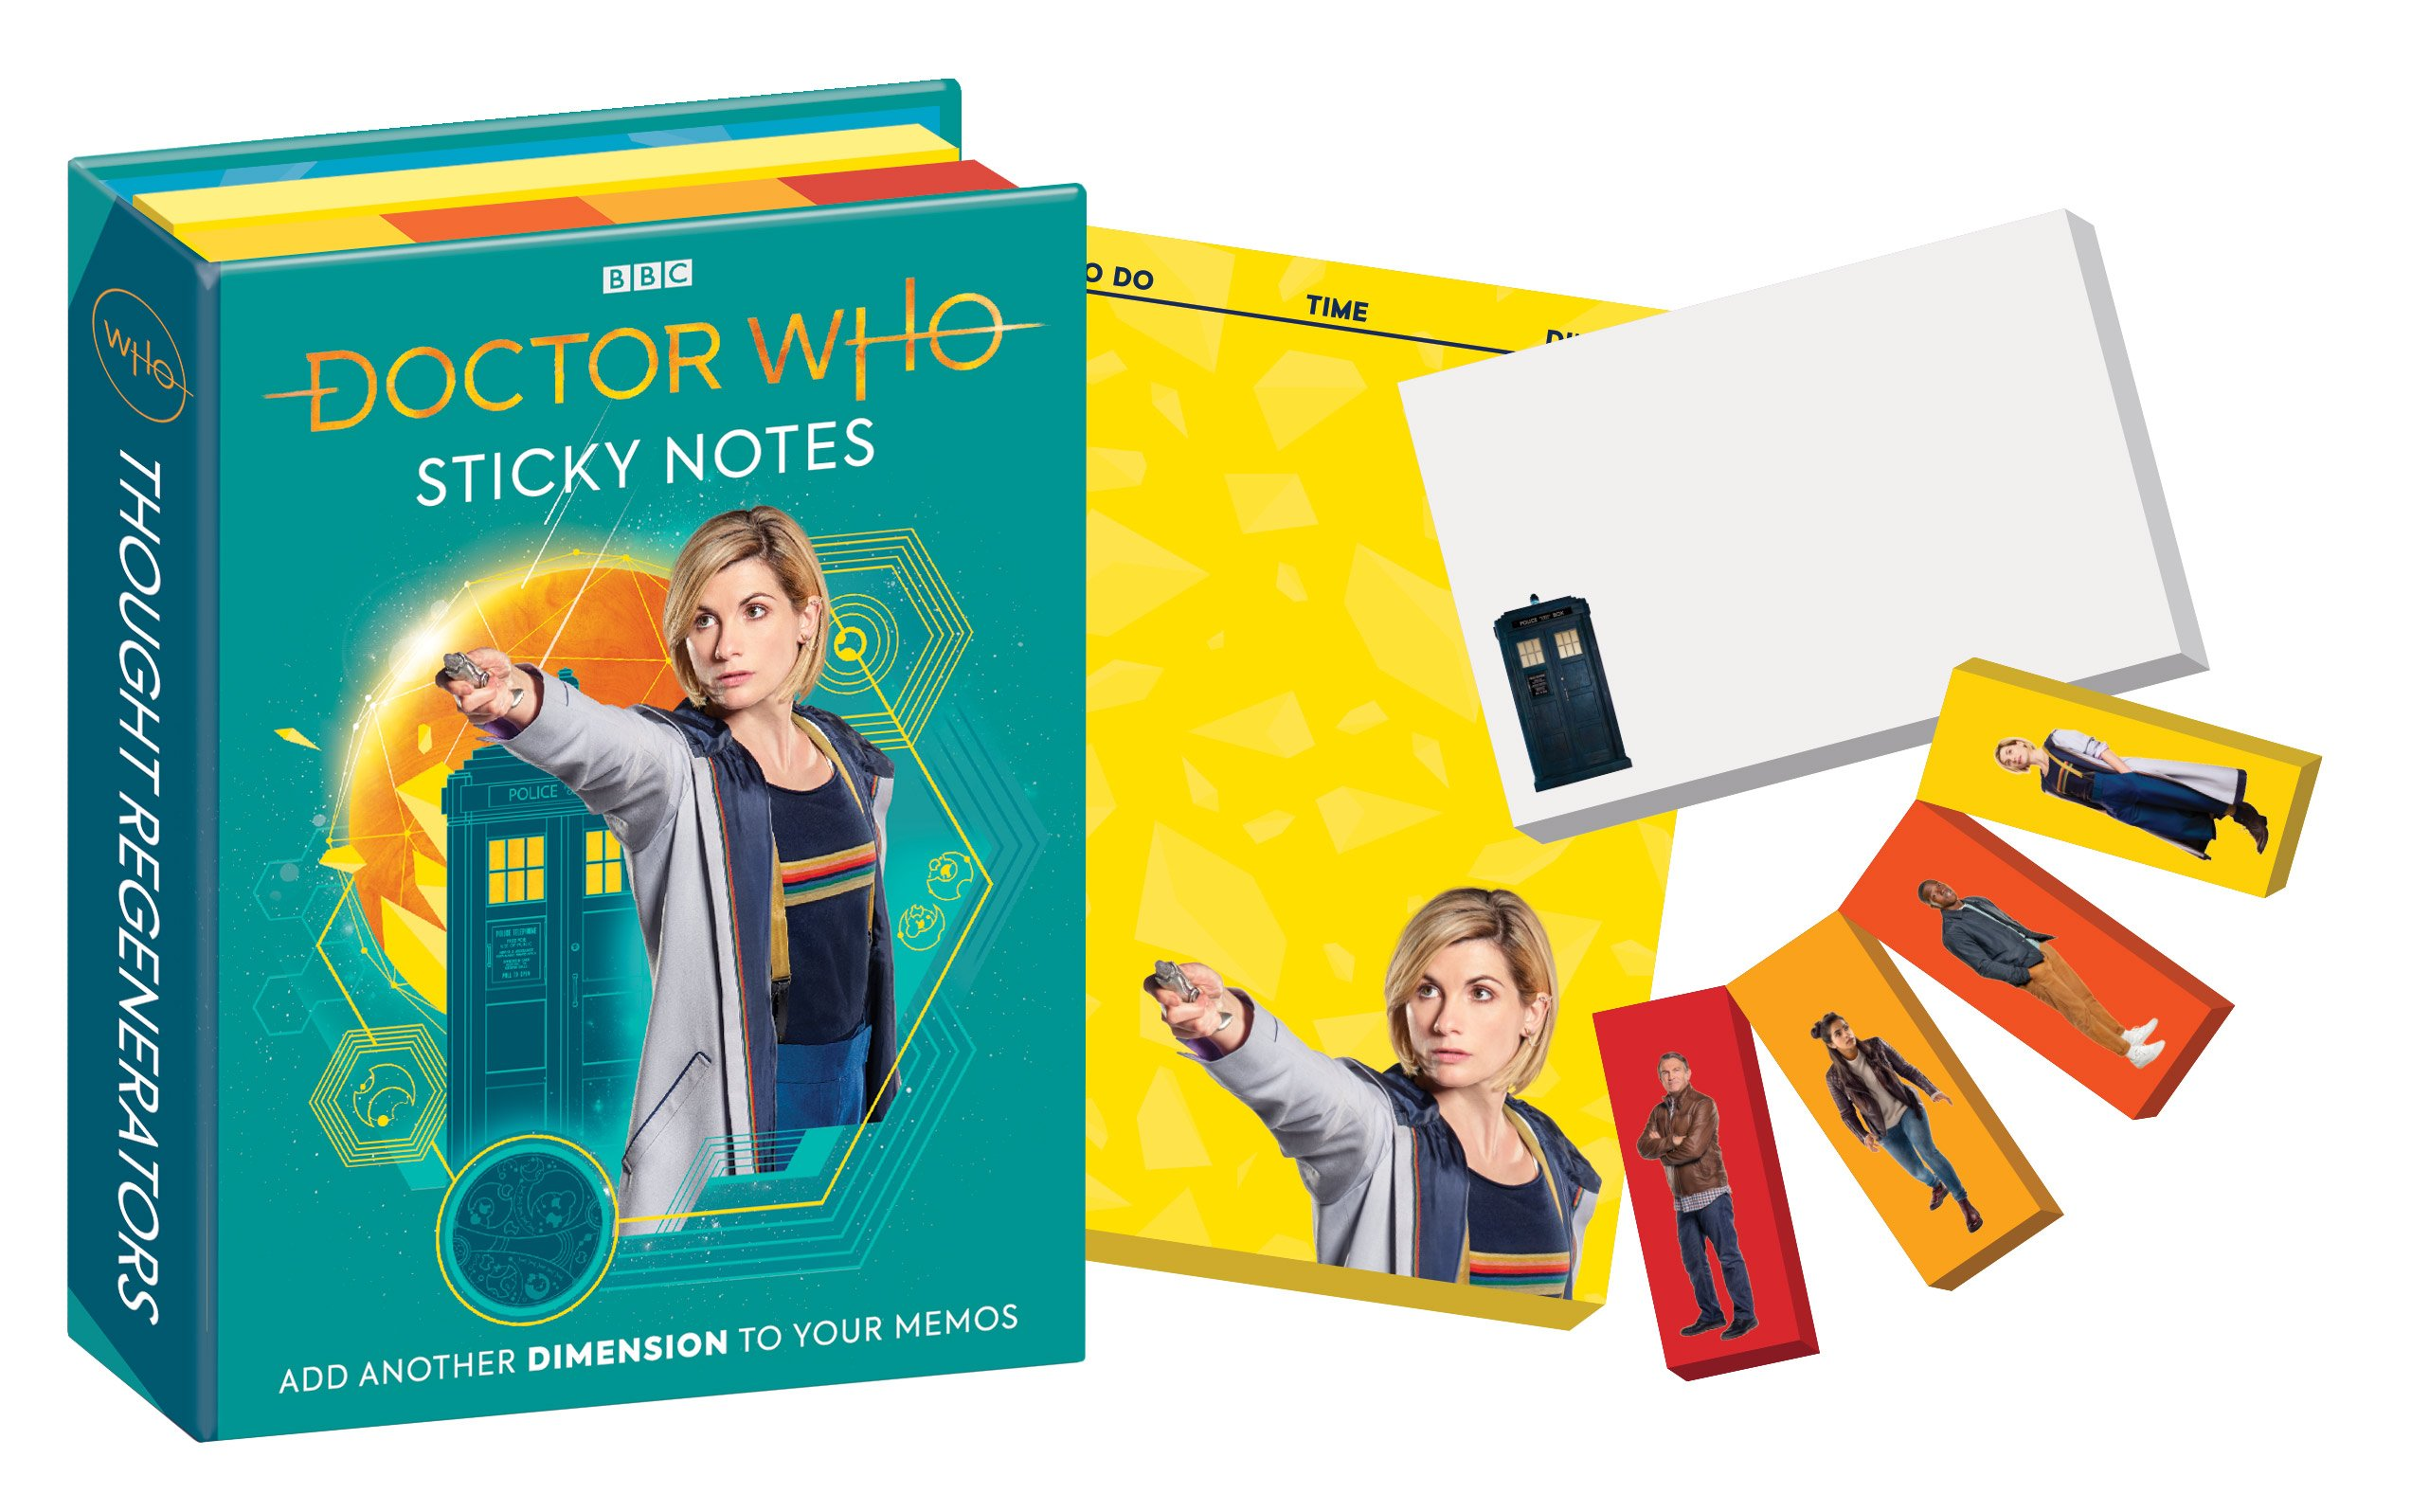 Doctor Who Sticky Notes (Whittaker)